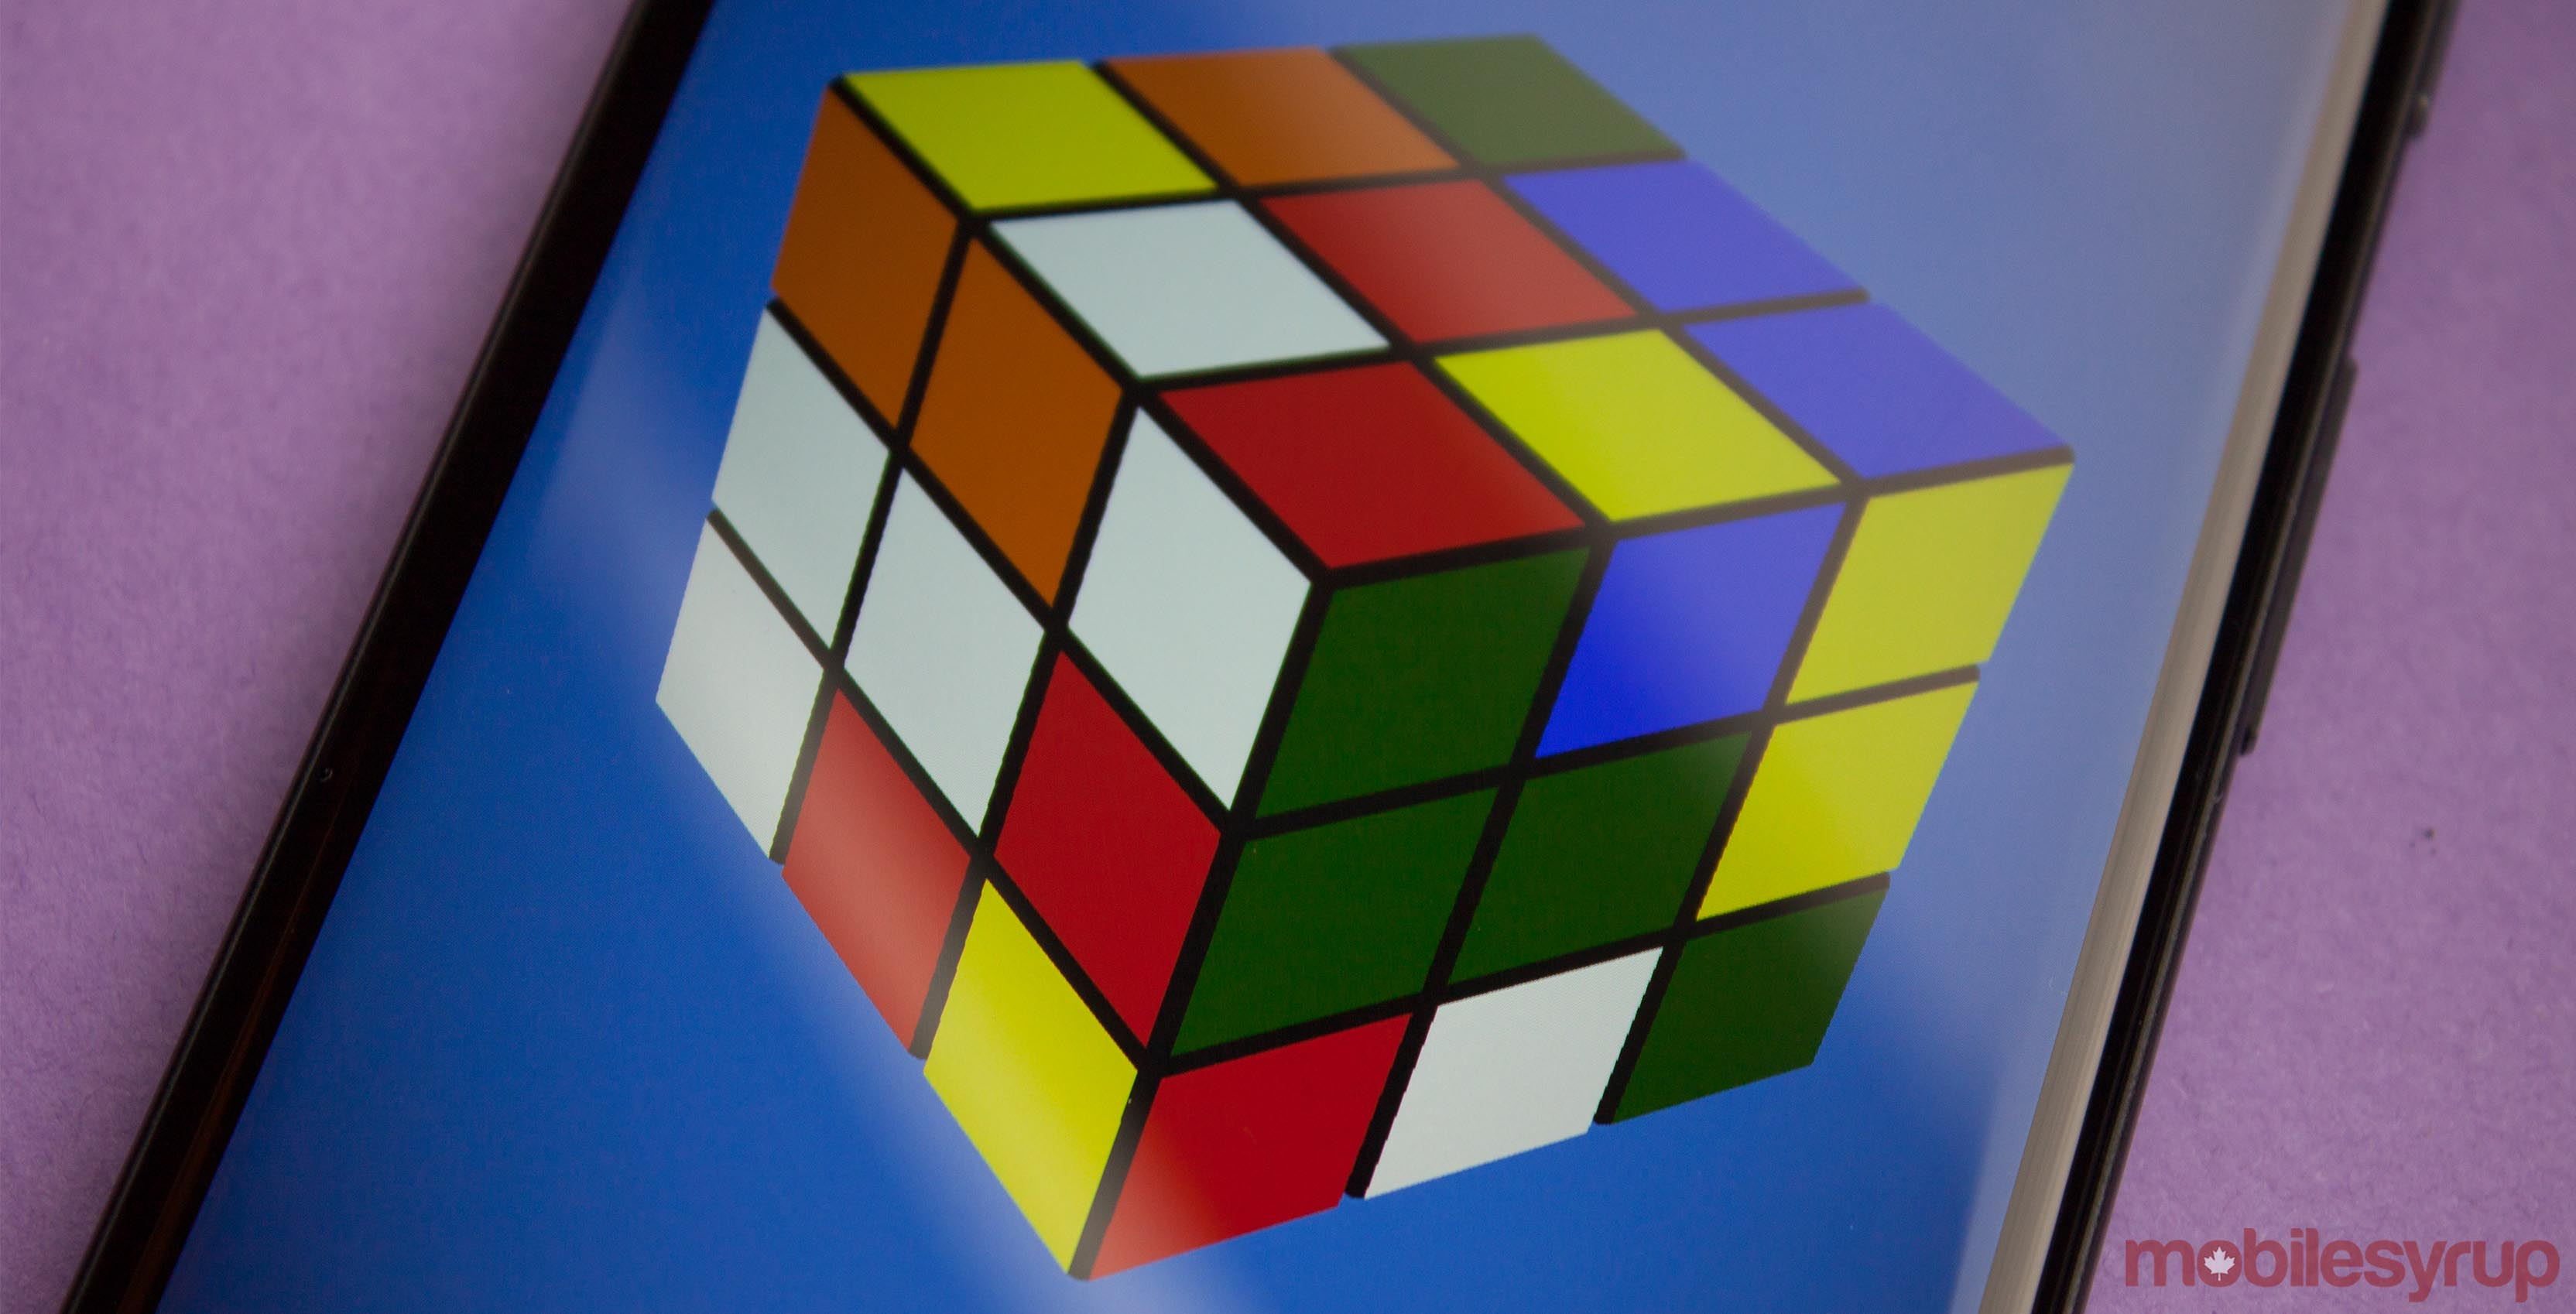 Rubik's Cube Montreal Researchers Create Ai That Taught Itself To Solve The Rubik S Cube